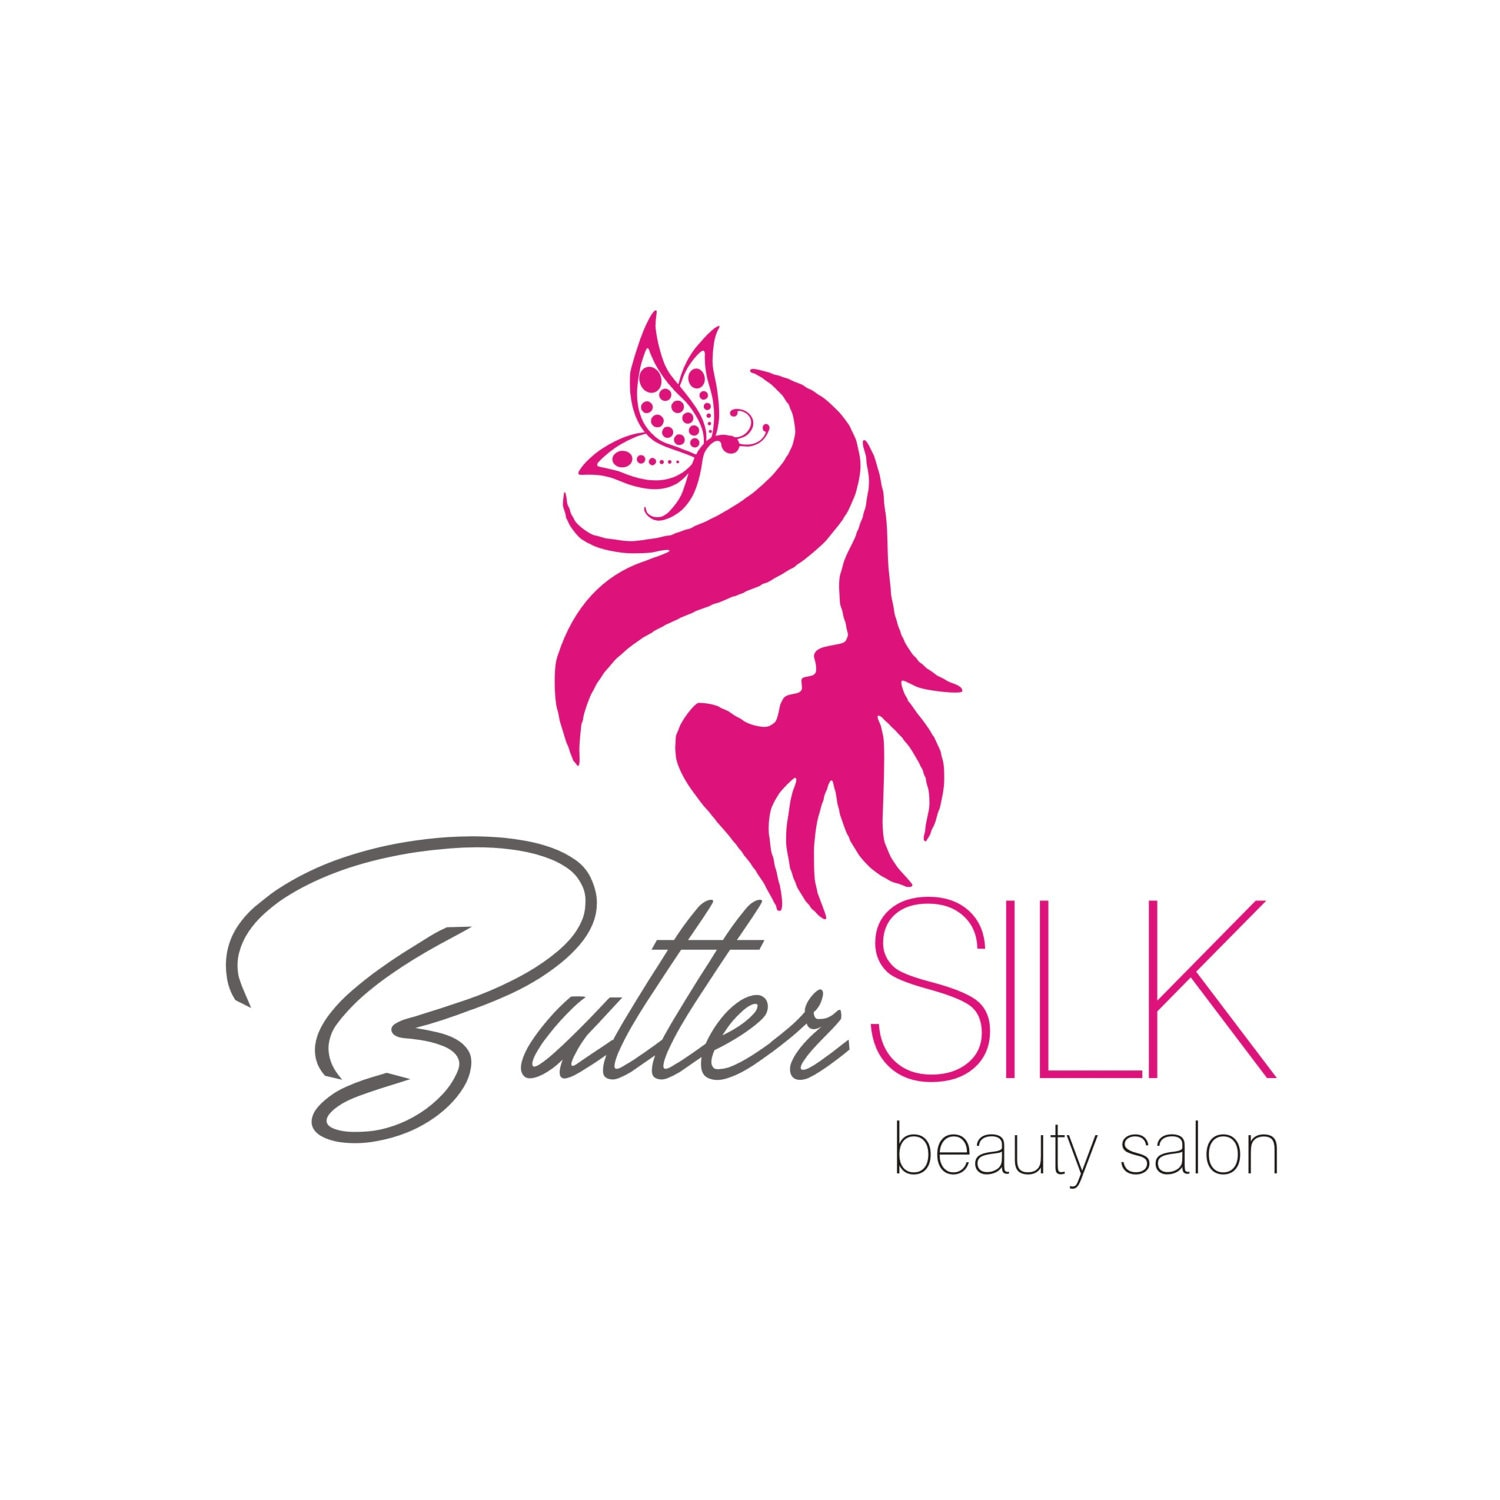 salon logo custom logo design logo design service beauty